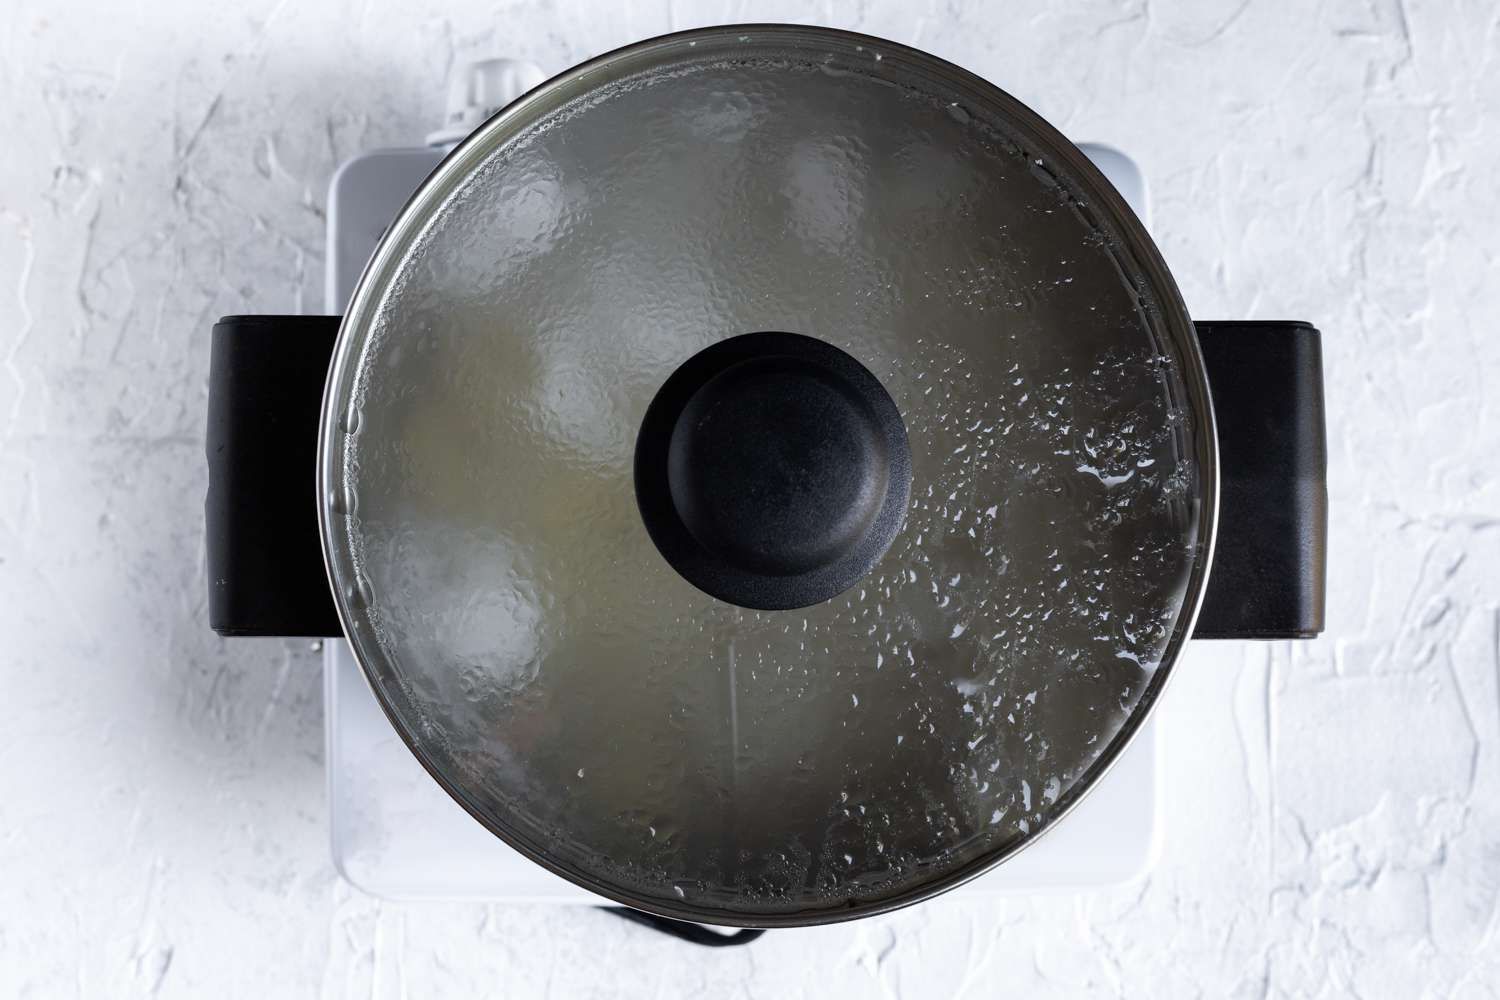 Potatoes simmering in a pot of water